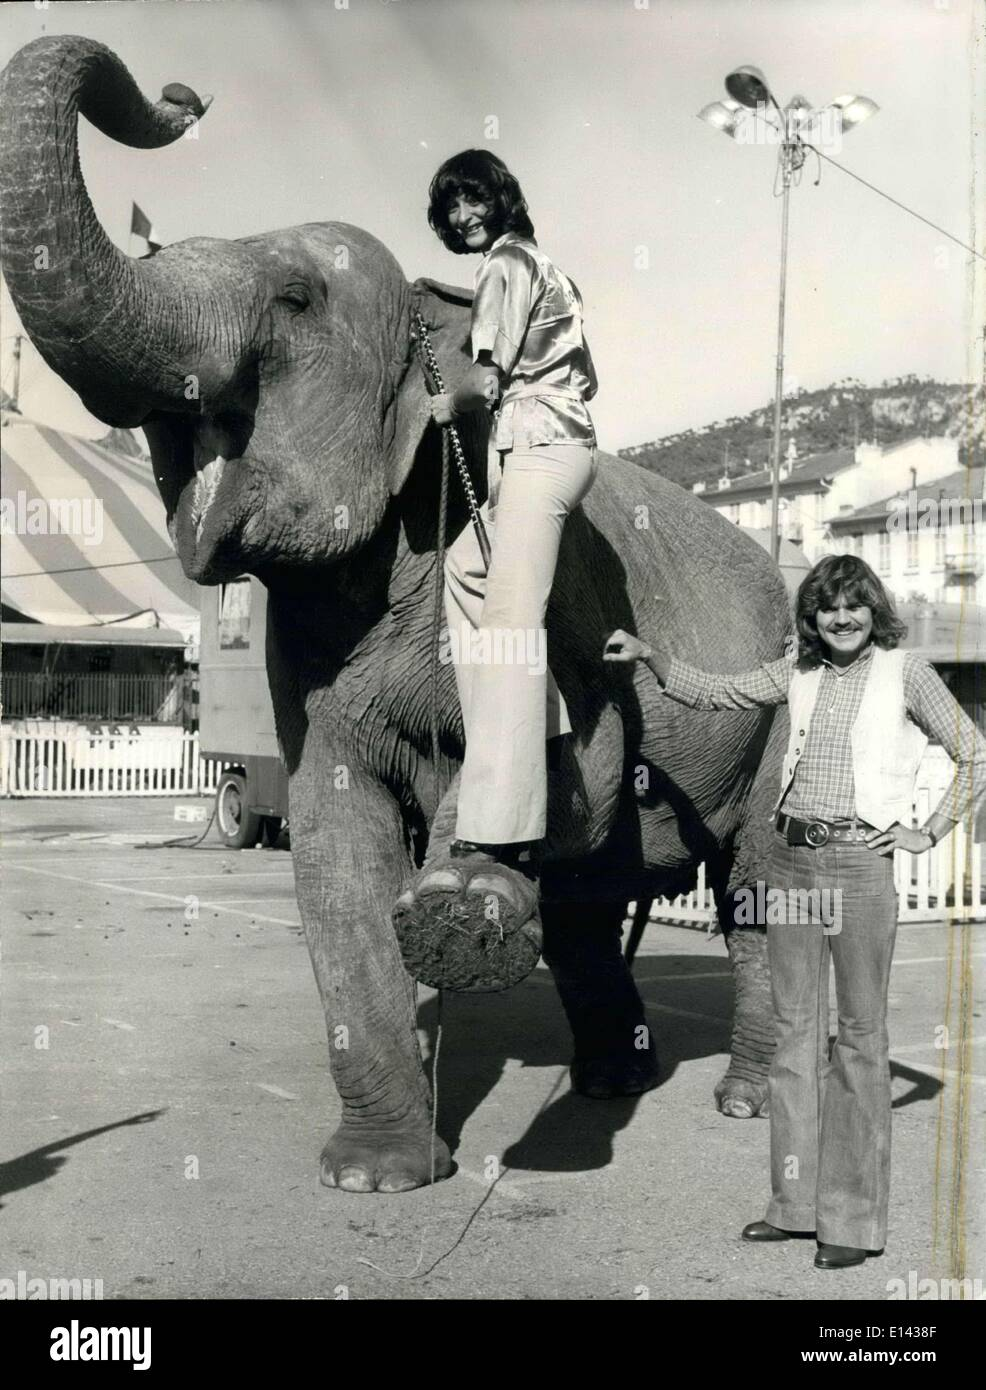 Mar. 31, 2012 - French vocalist team of Catherine Duquesne and Henry Evieux, The Mandarins befriend an old friend at the Jean Richard Circus in Nice. Duquesne was a former acrobat and dancer with the circus but had a specially soft spot for the elephants. - Stock Image